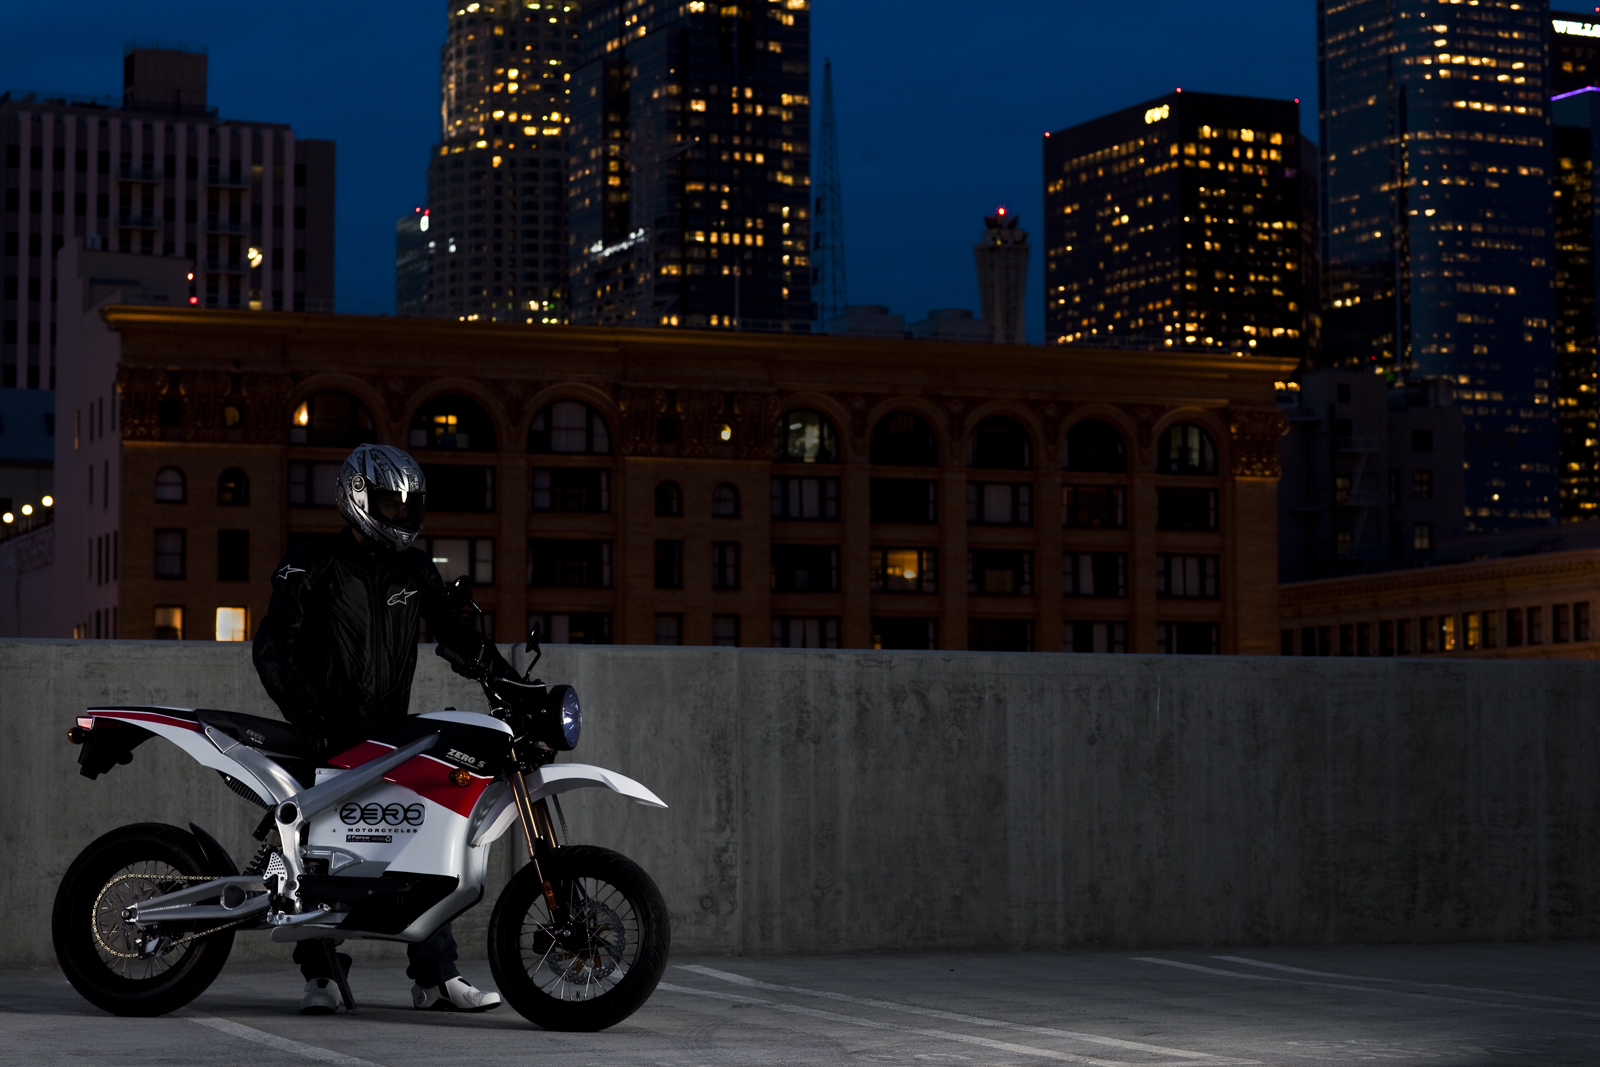 2010 Zero S Electric Motorcycle: Los Angeles - City Lights